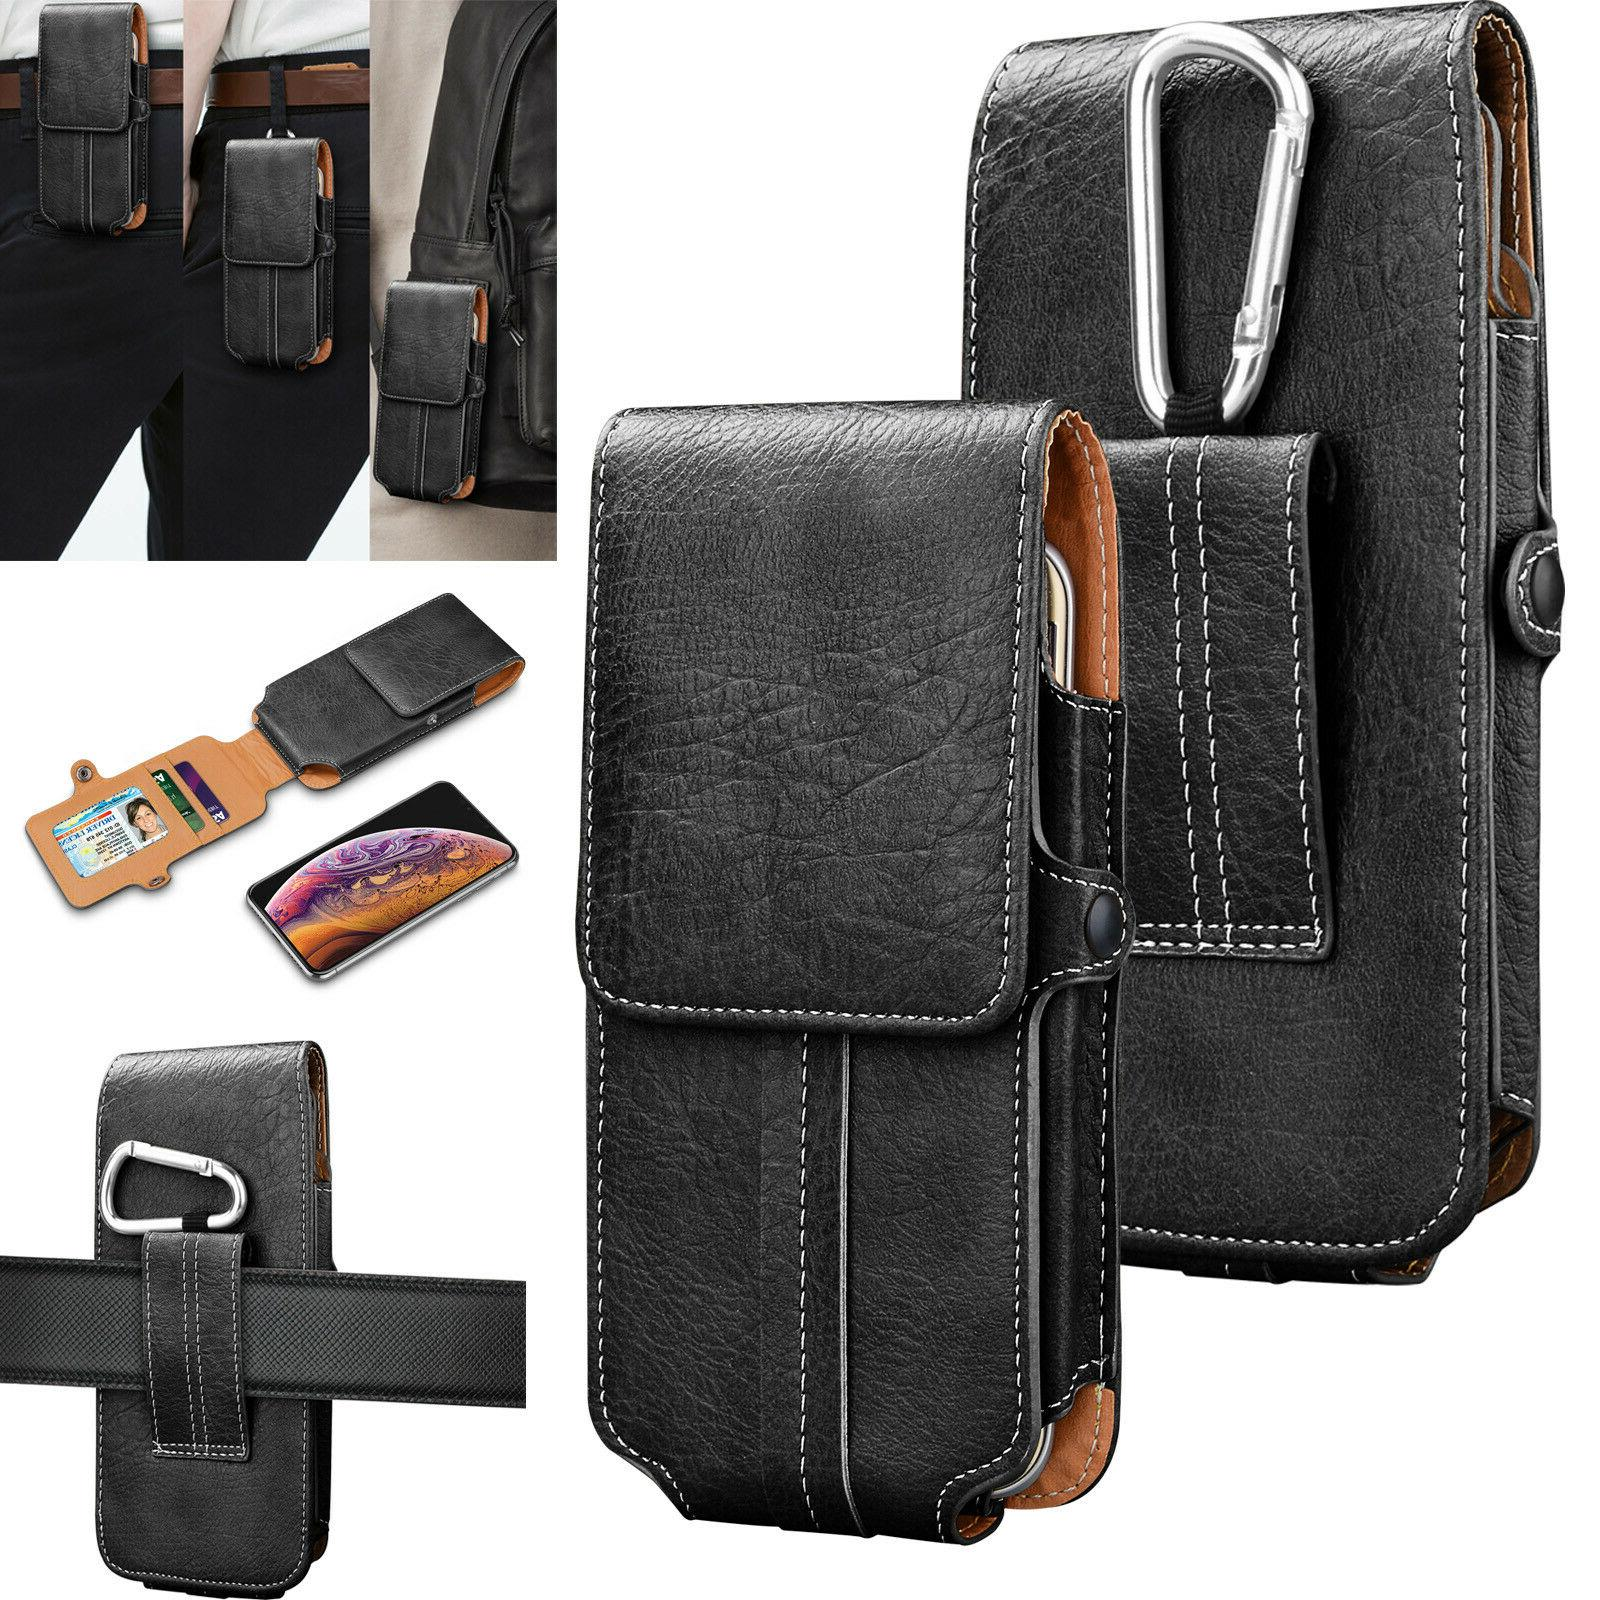 Luxury Leather Case Pouch For LG Phone With Belt Clip New